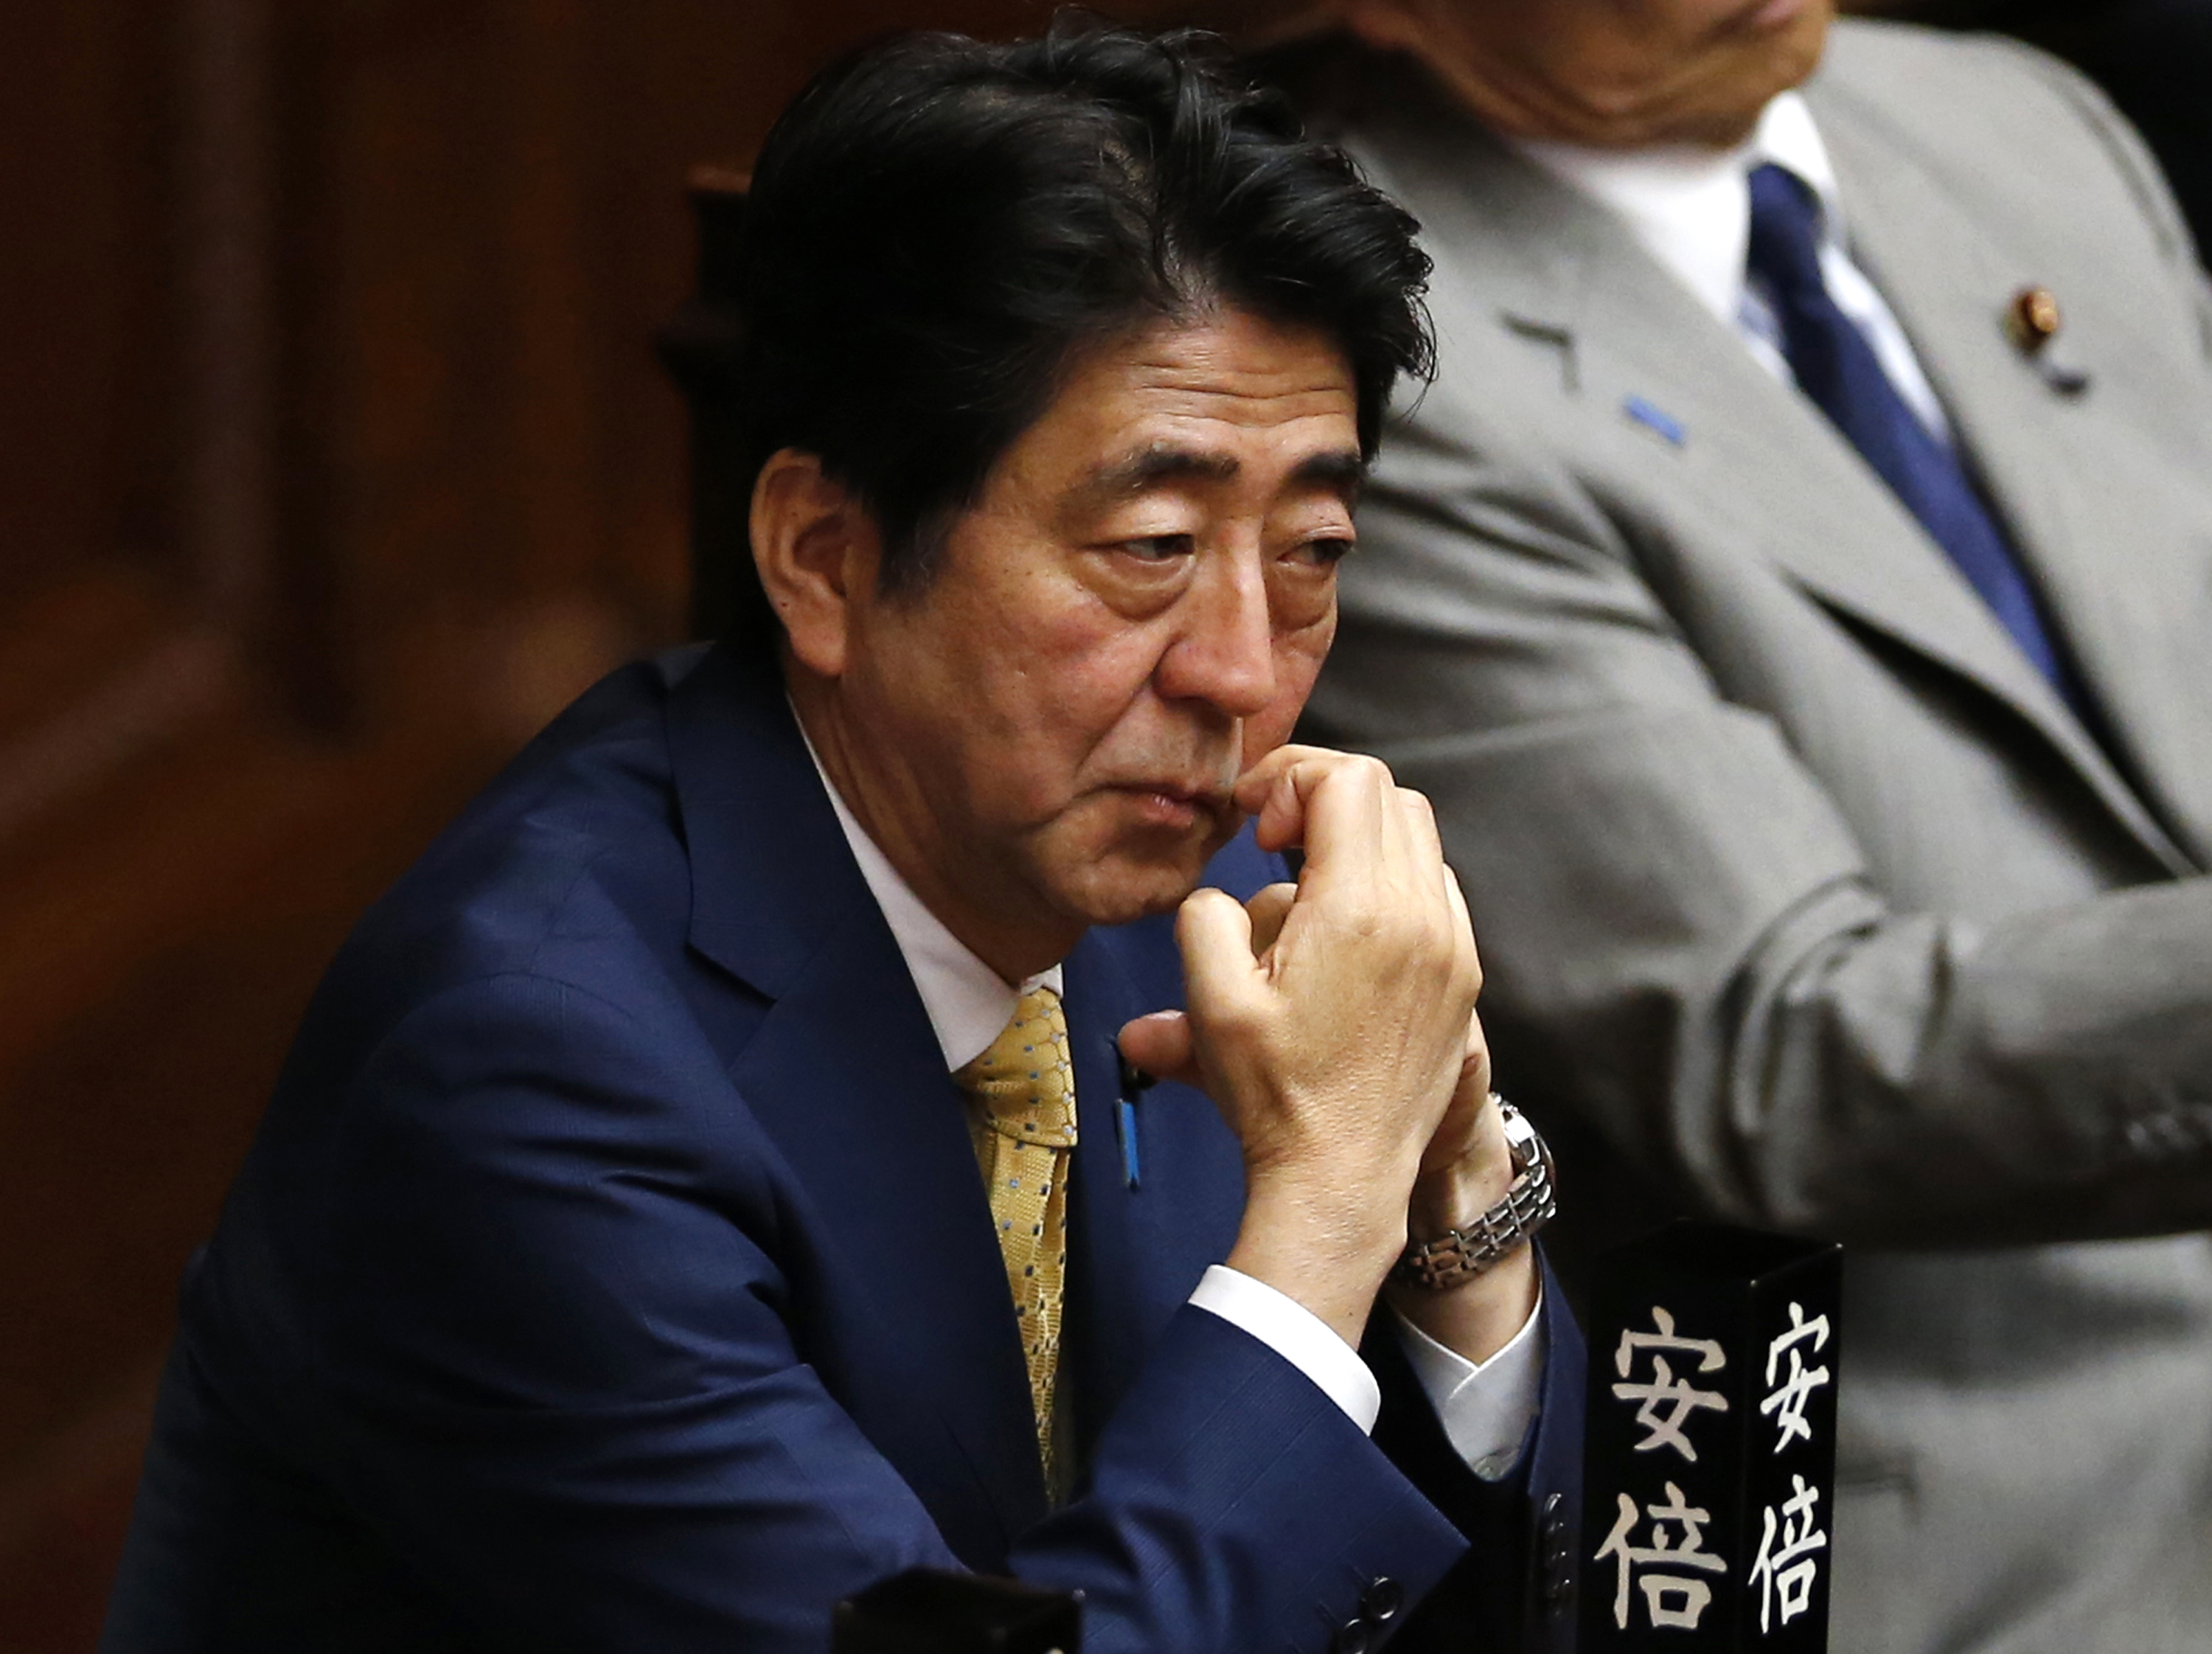 In this July 16, 2015 phpoto, Japanese Prime Minister Shinzo Abe attends a plenary session at the lower house in Tokyo. Public support for Japanese Prime Minister Abe has dropped sharply after his government pushed through highly contentious legislation mid-July to expand the role of the military. Photo: AP